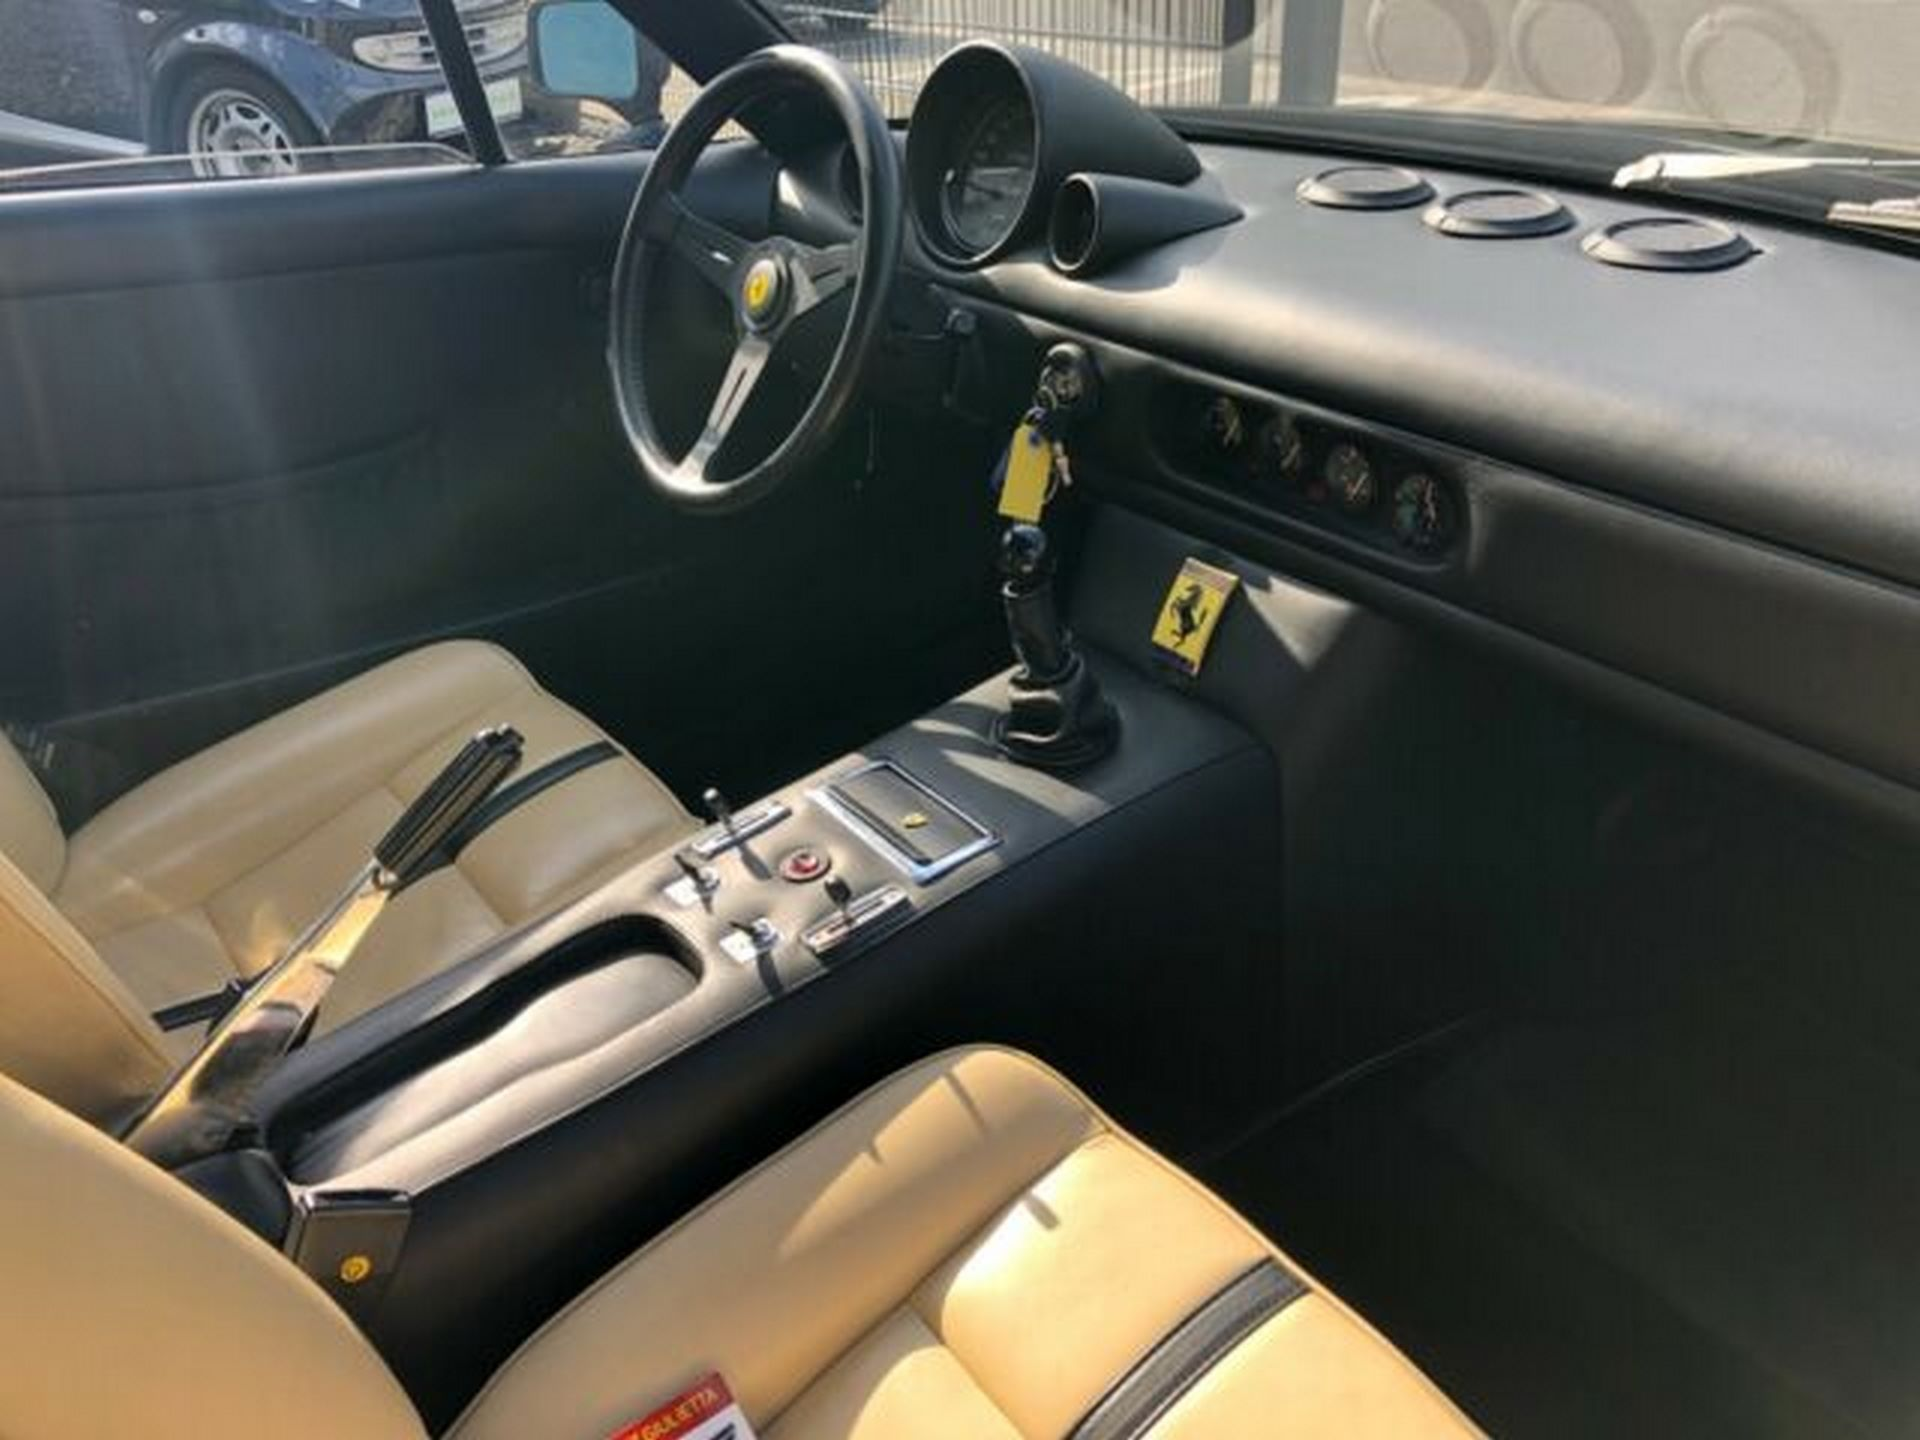 Ferrari-365-GT-NART-for-sale-13